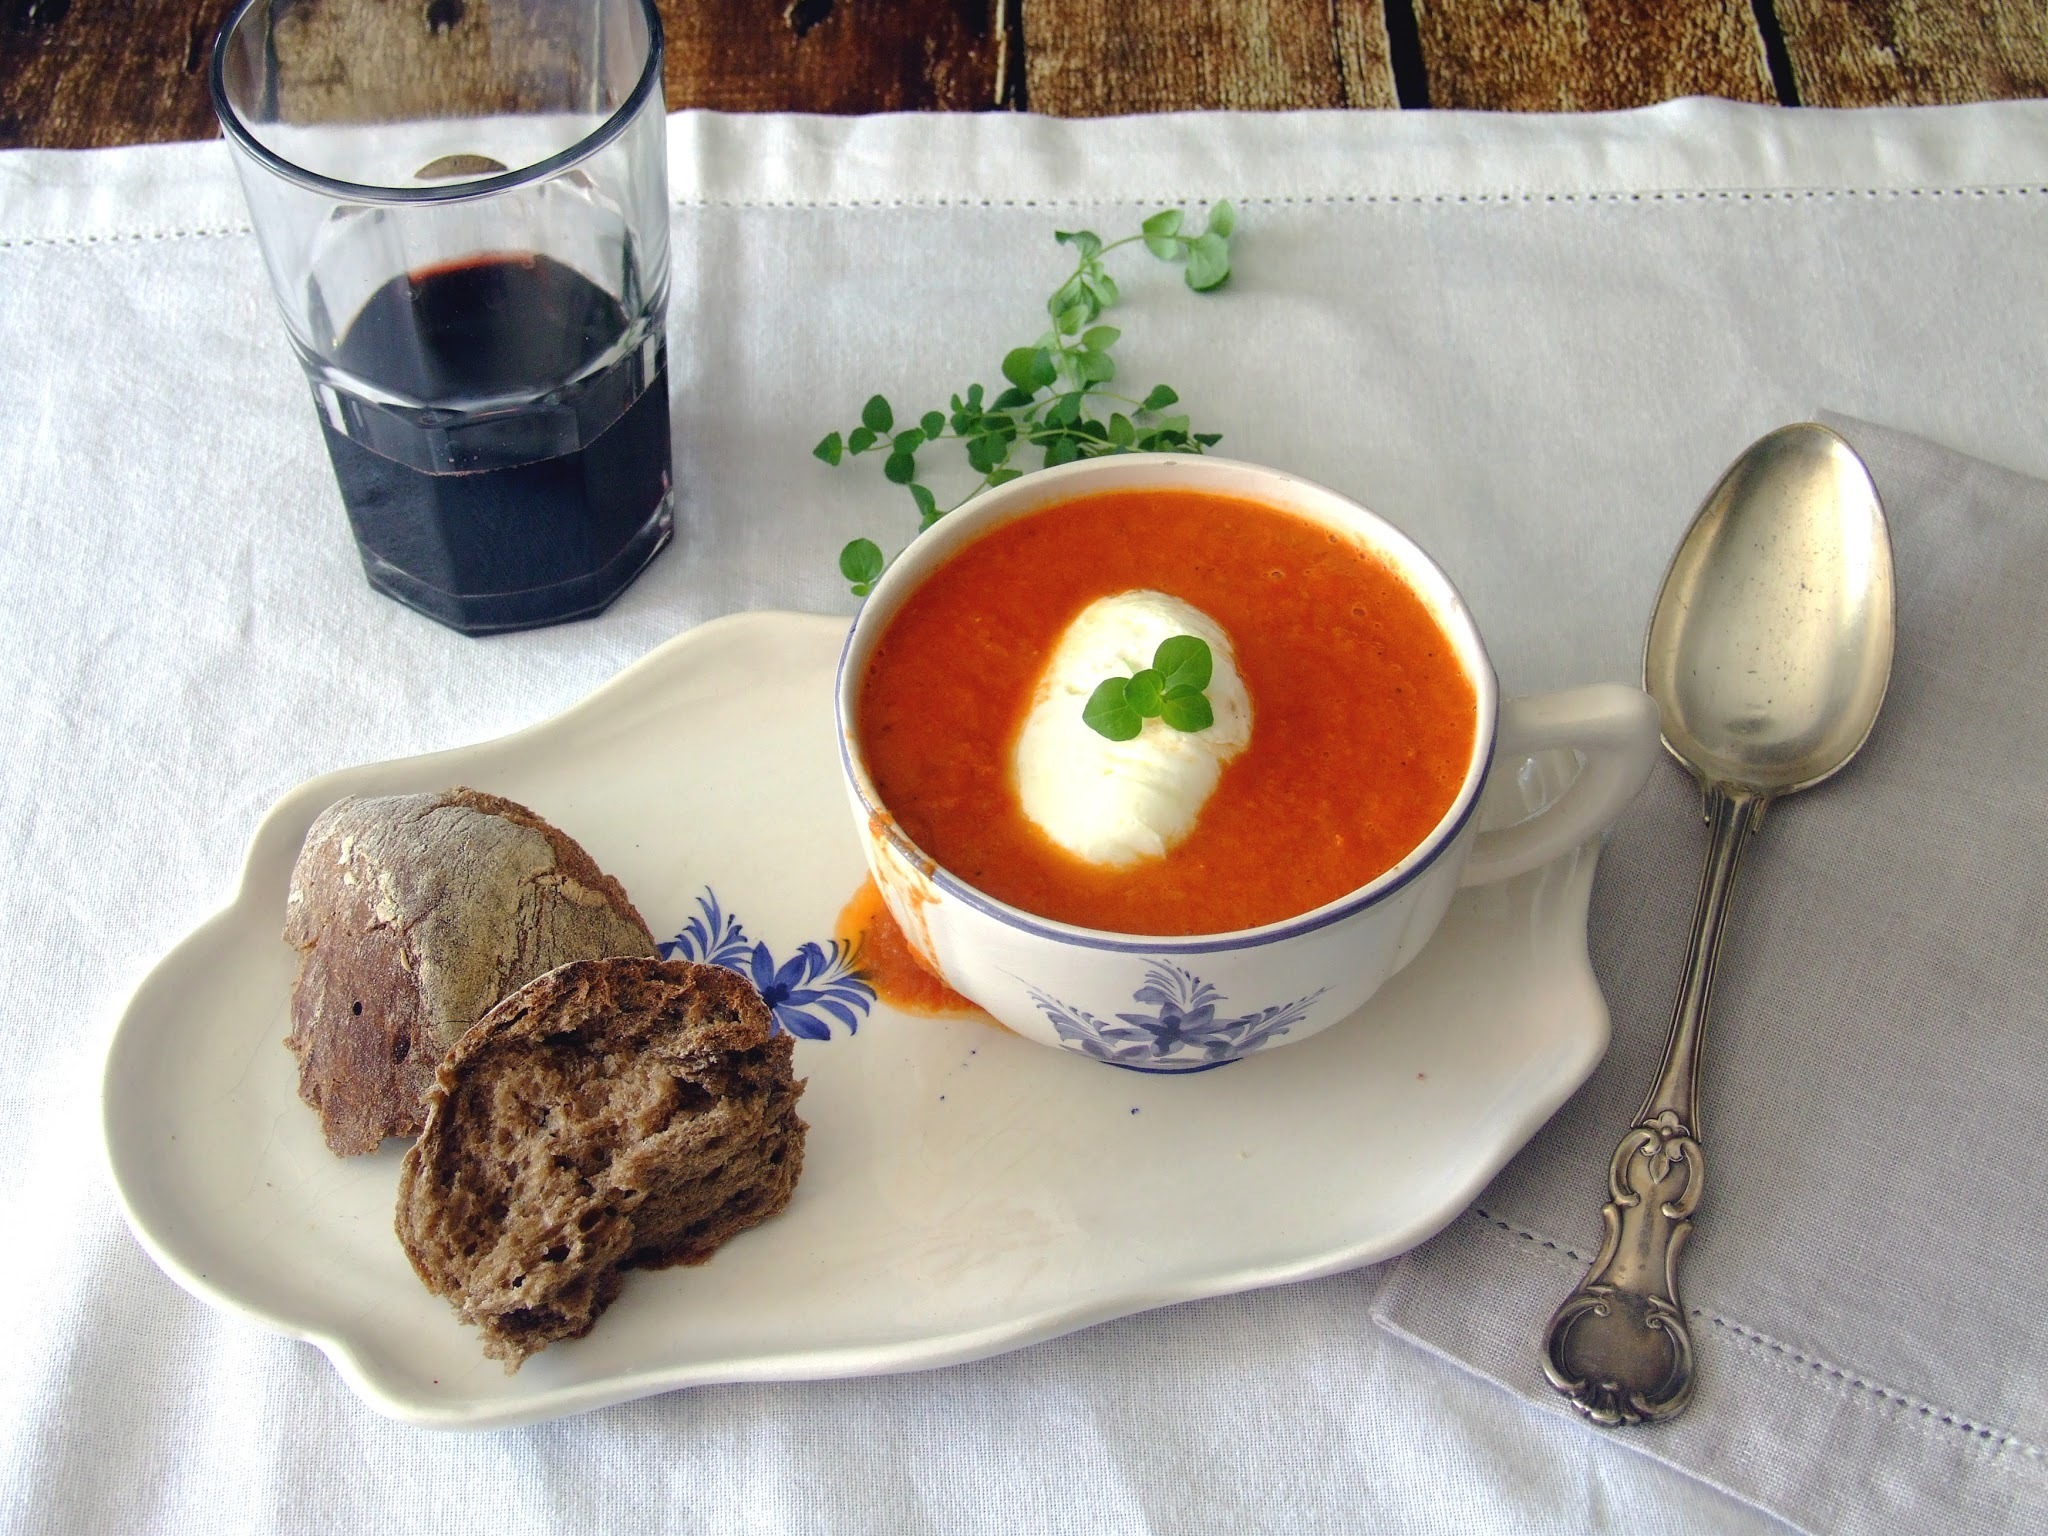 Sopa de tomate assado . Roasted tomato soup